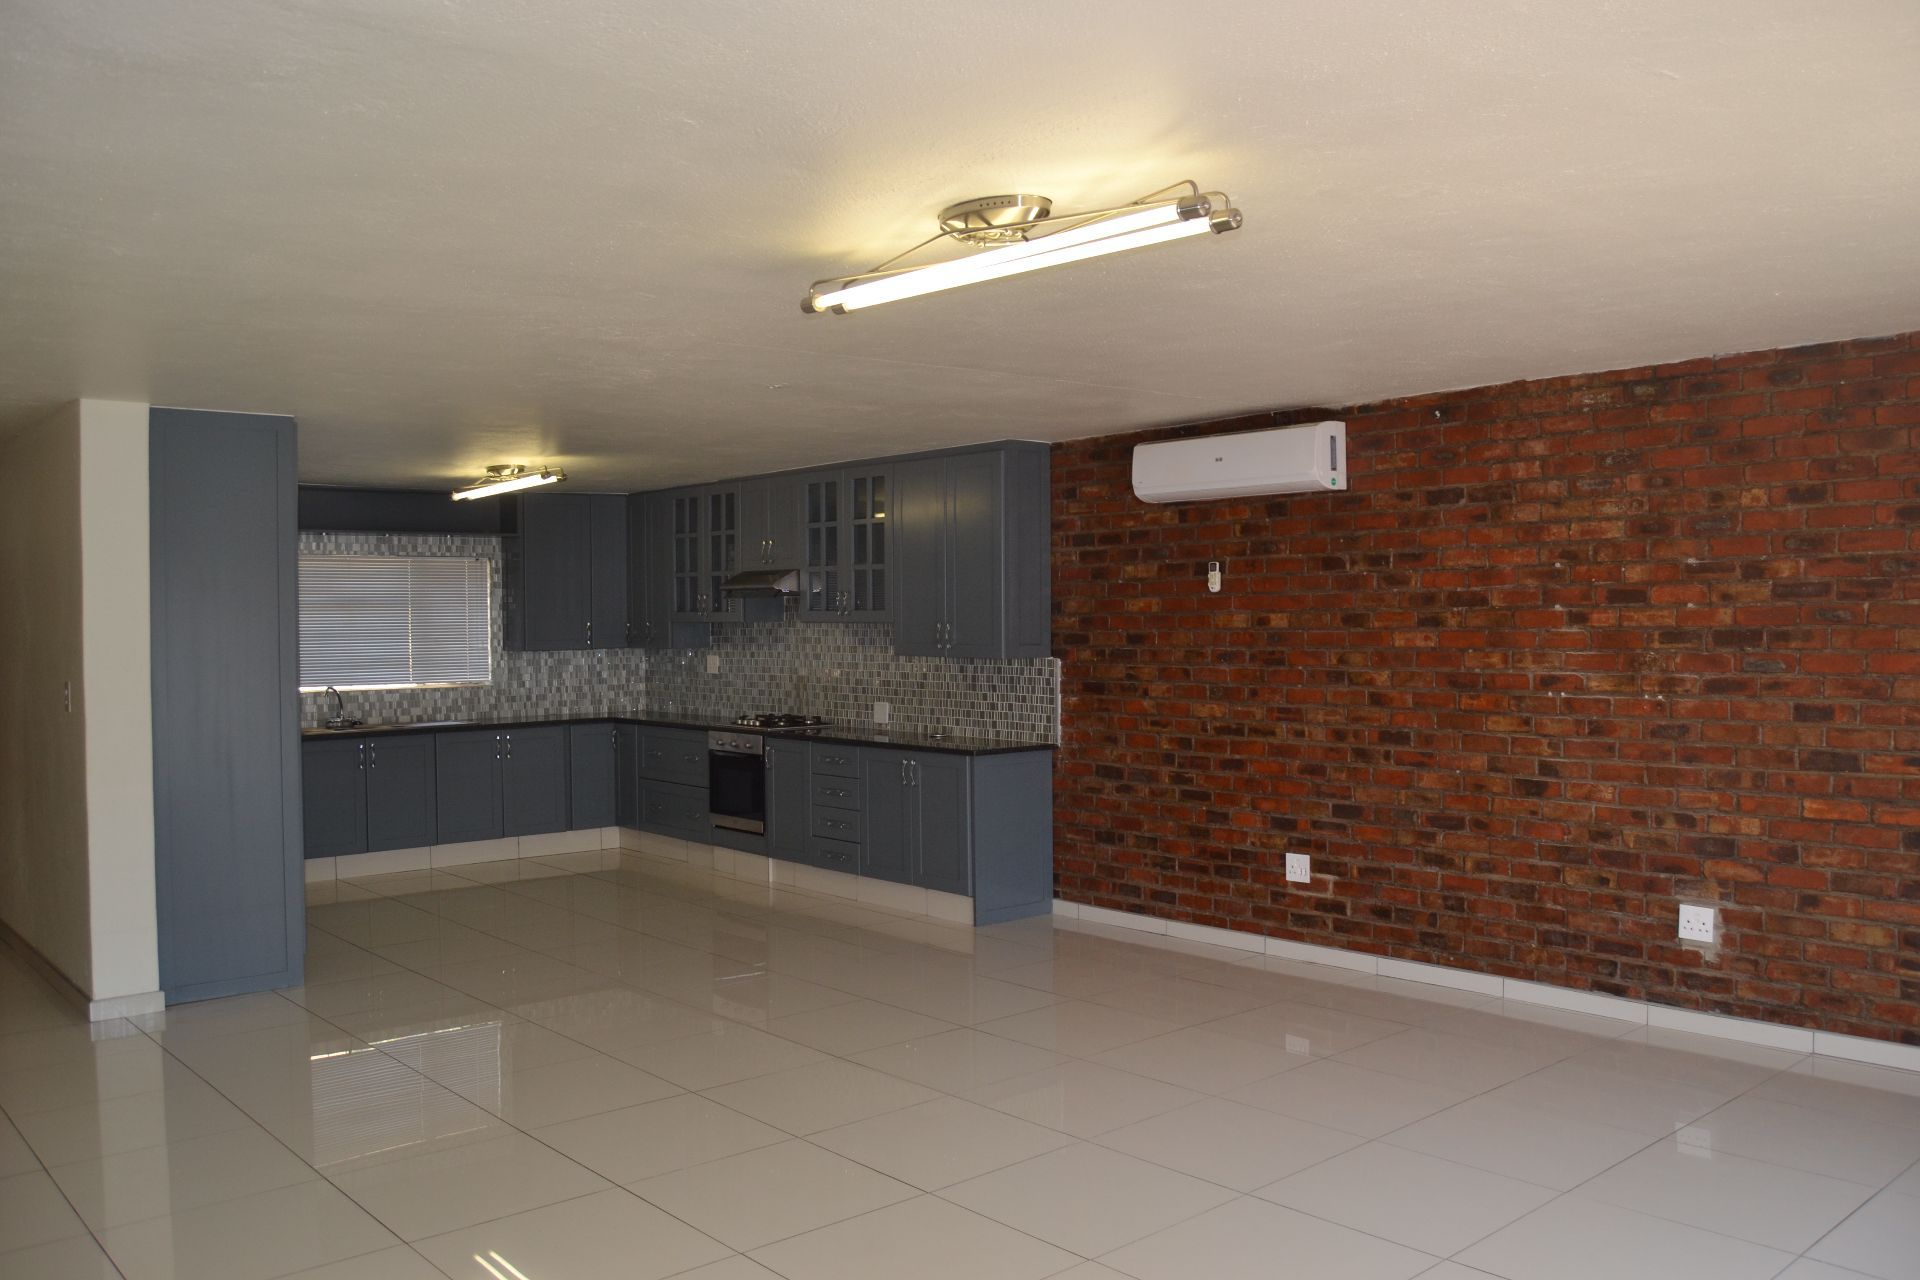 Potchefstroom Central property for sale. Ref No: 13605114. Picture no 4